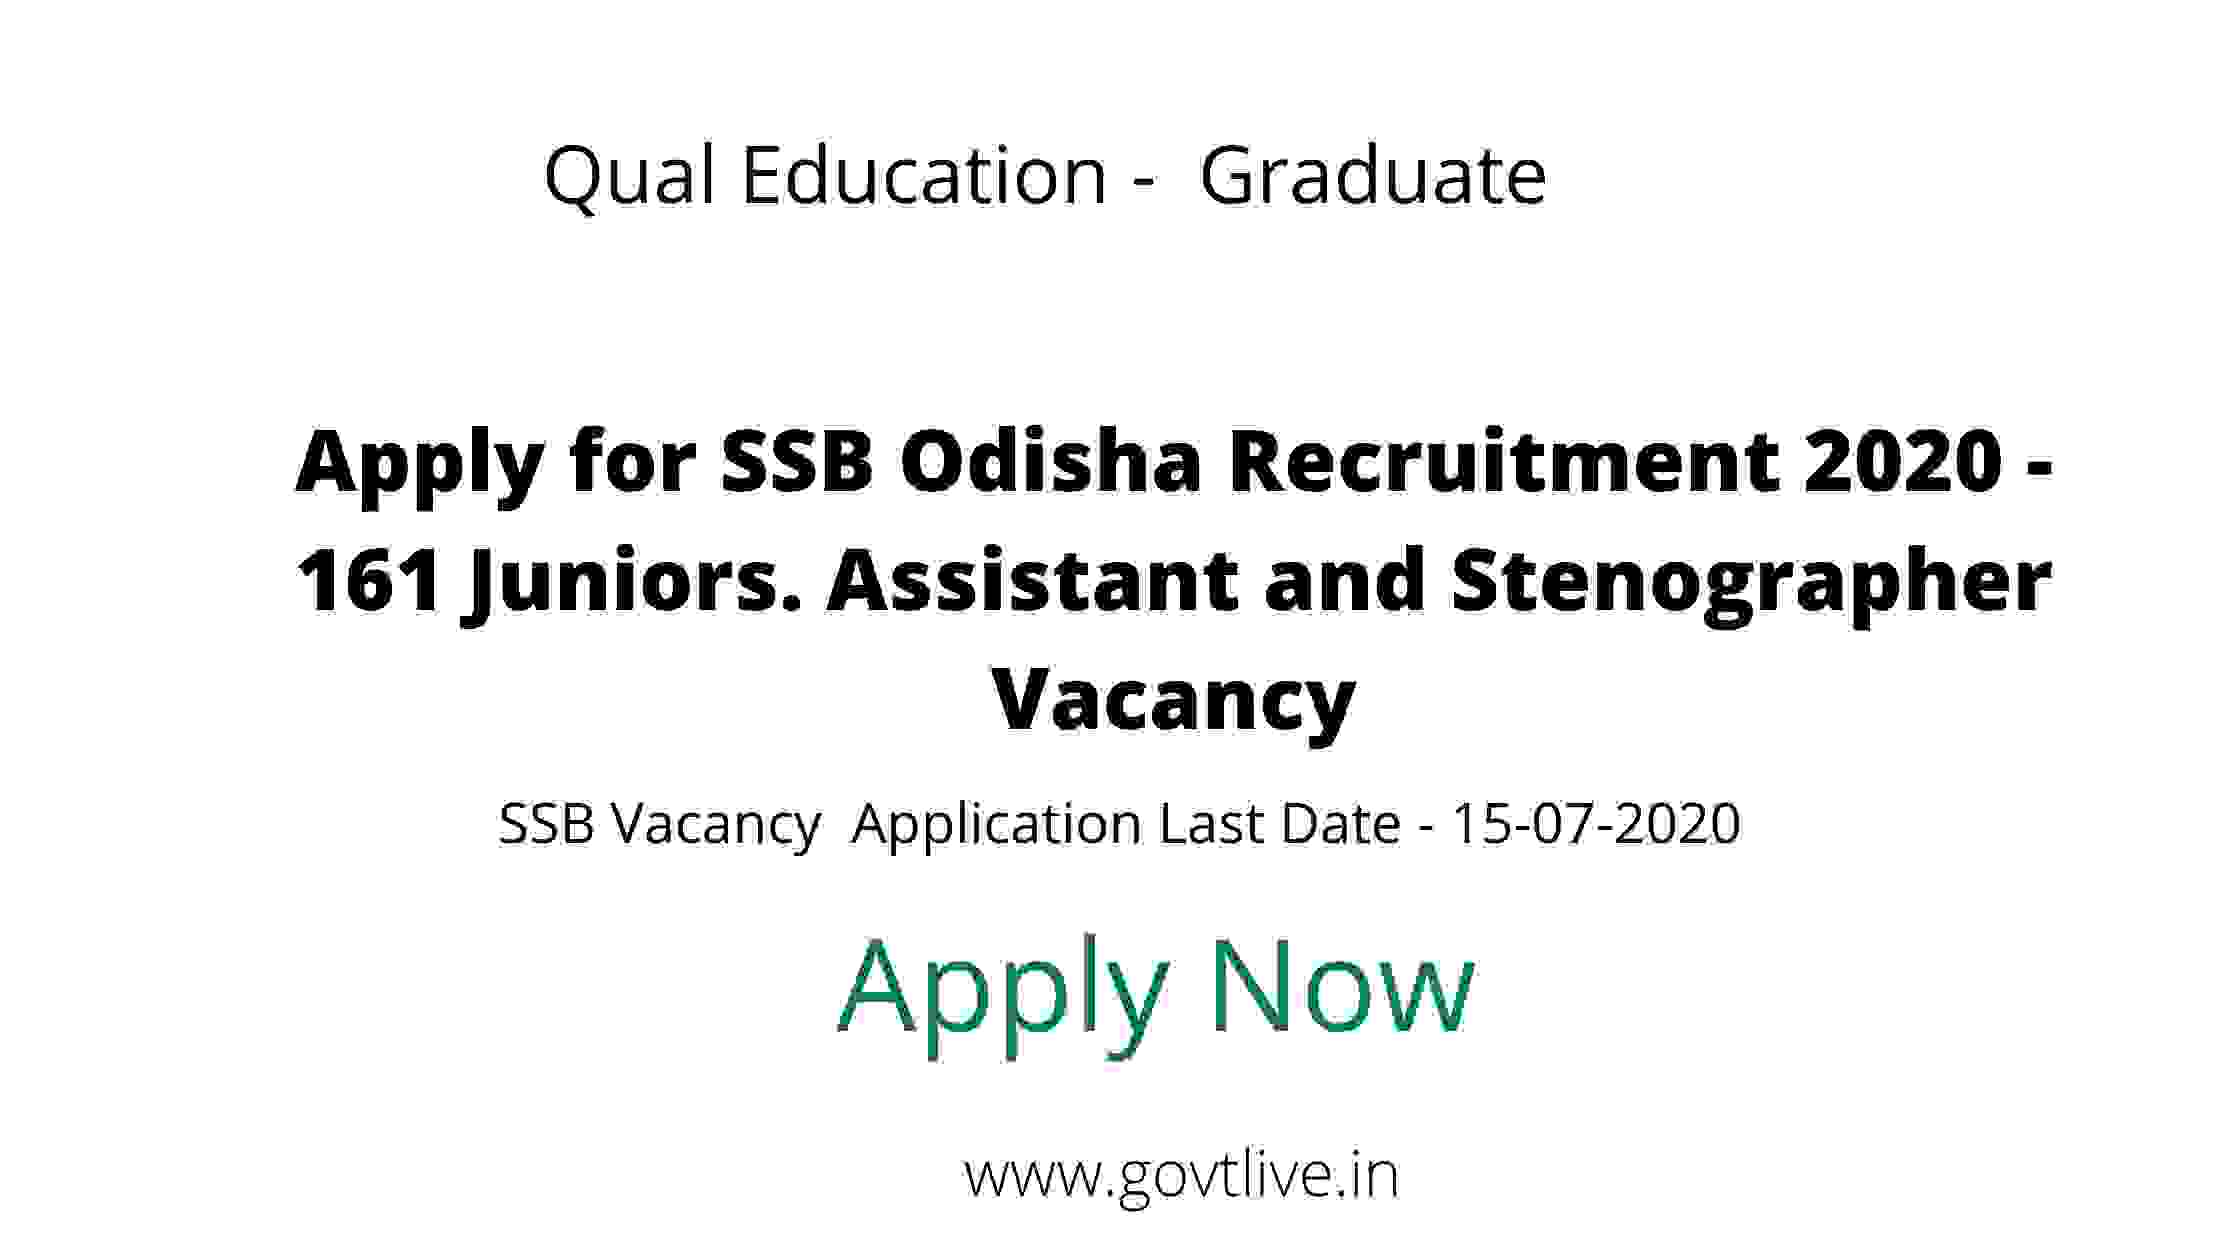 Apply for SSB Odisha Recruitment 2020 - 161 Juniors. Assistant and Stenographer Vacancy